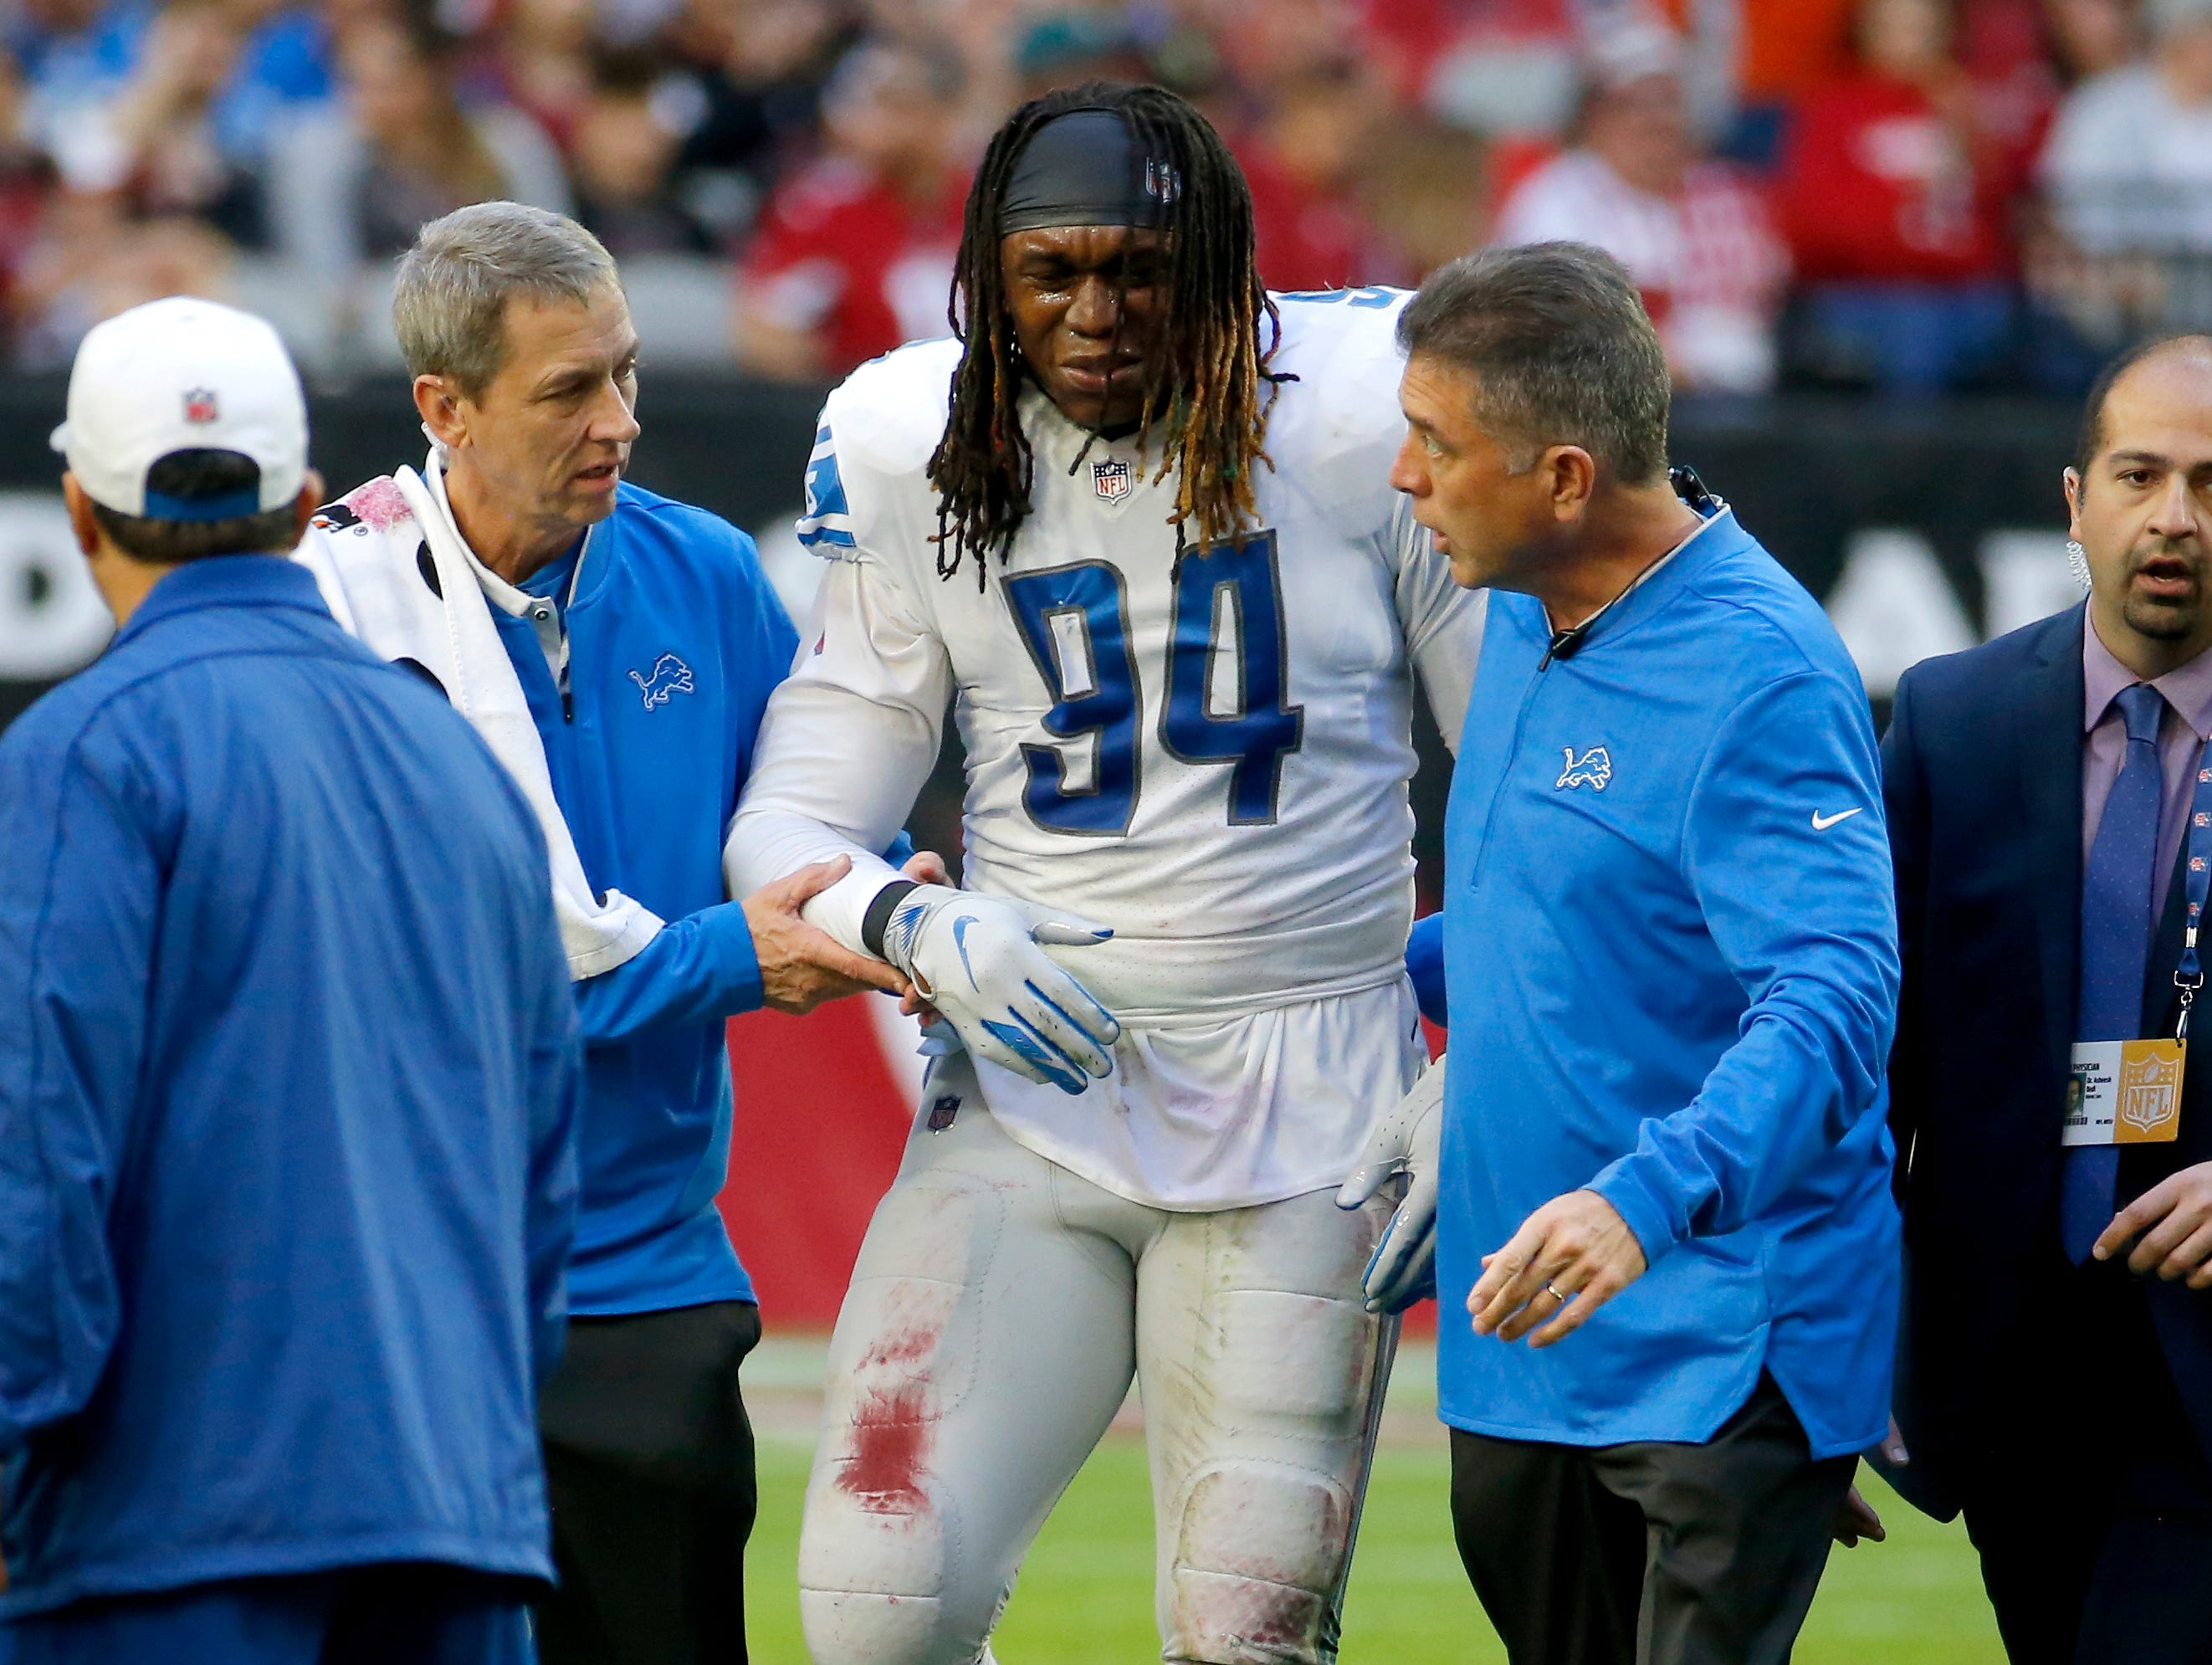 Detroit Lions defensive end Ezekiel Ansah (94) is helped after an injury against the Arizona Cardinals during the first half.